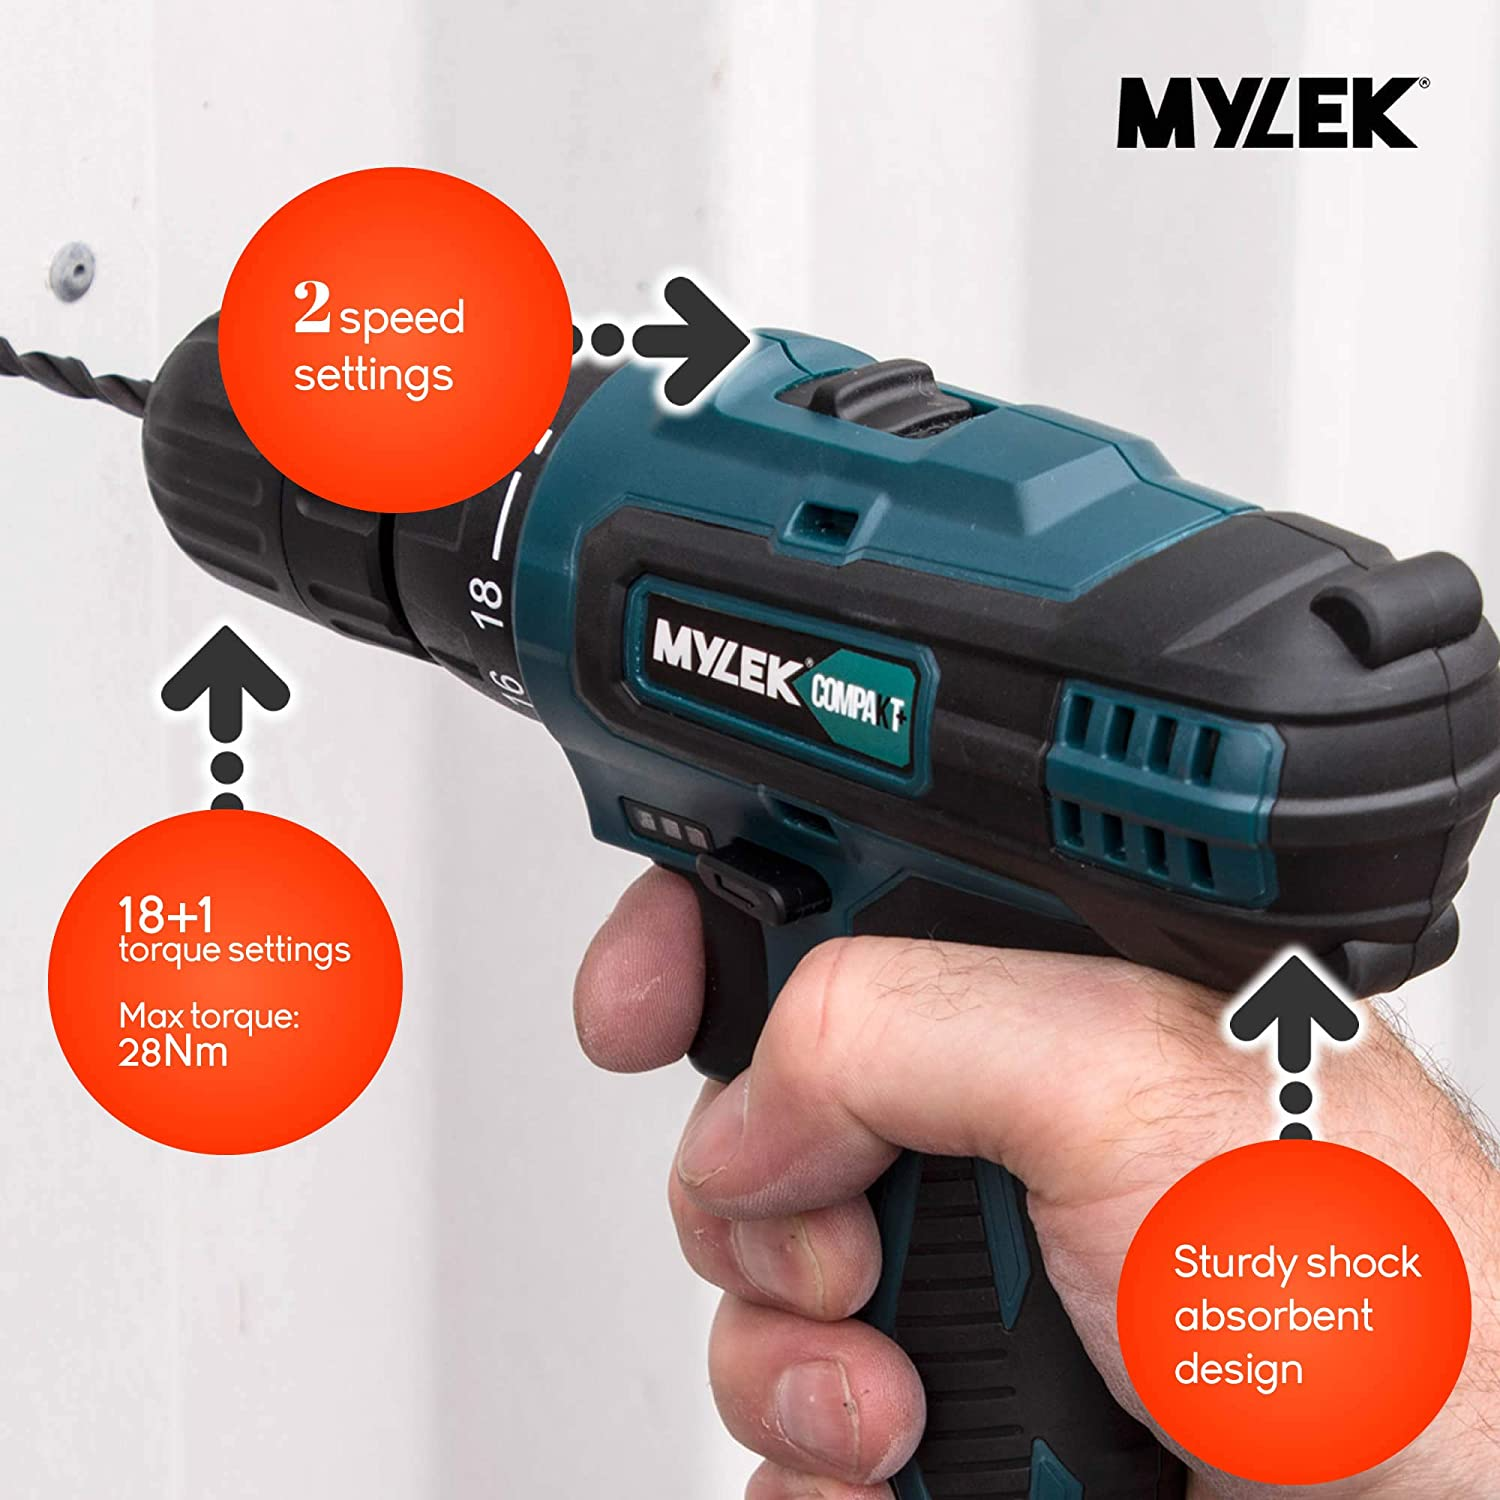 Carry Case with 13 Piece Accessory Kit Variable Speed /& Quick Stop Function. 1300 mAh Li-Ion battery with 1 Hour Quick Charge 2 Speed with LED Work Light MYLEK 18V Cordless Drill Driver